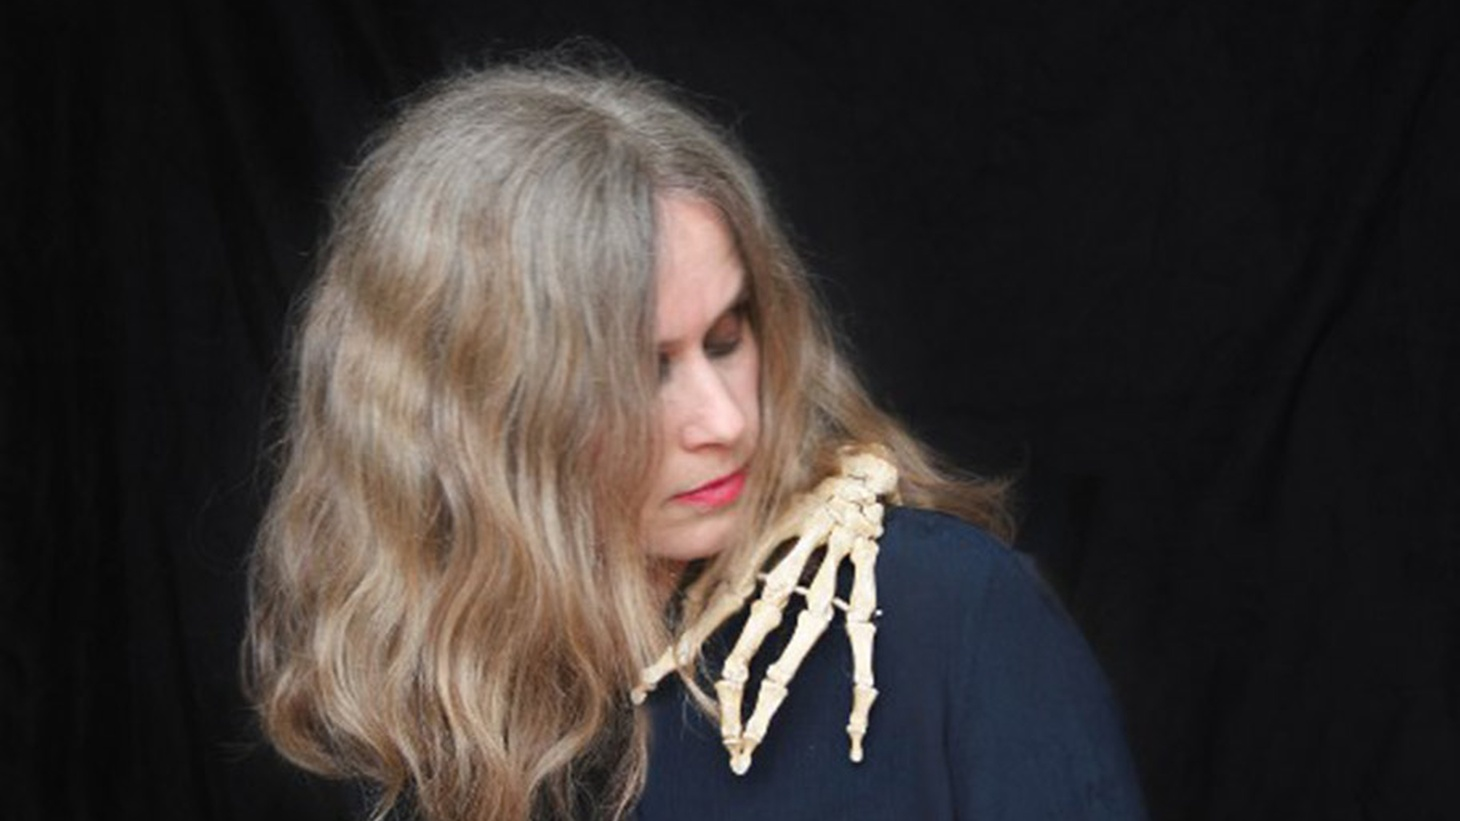 Juana Molina has an indelible signature sound and magical delivery that perfectly complement her experimental imagination.